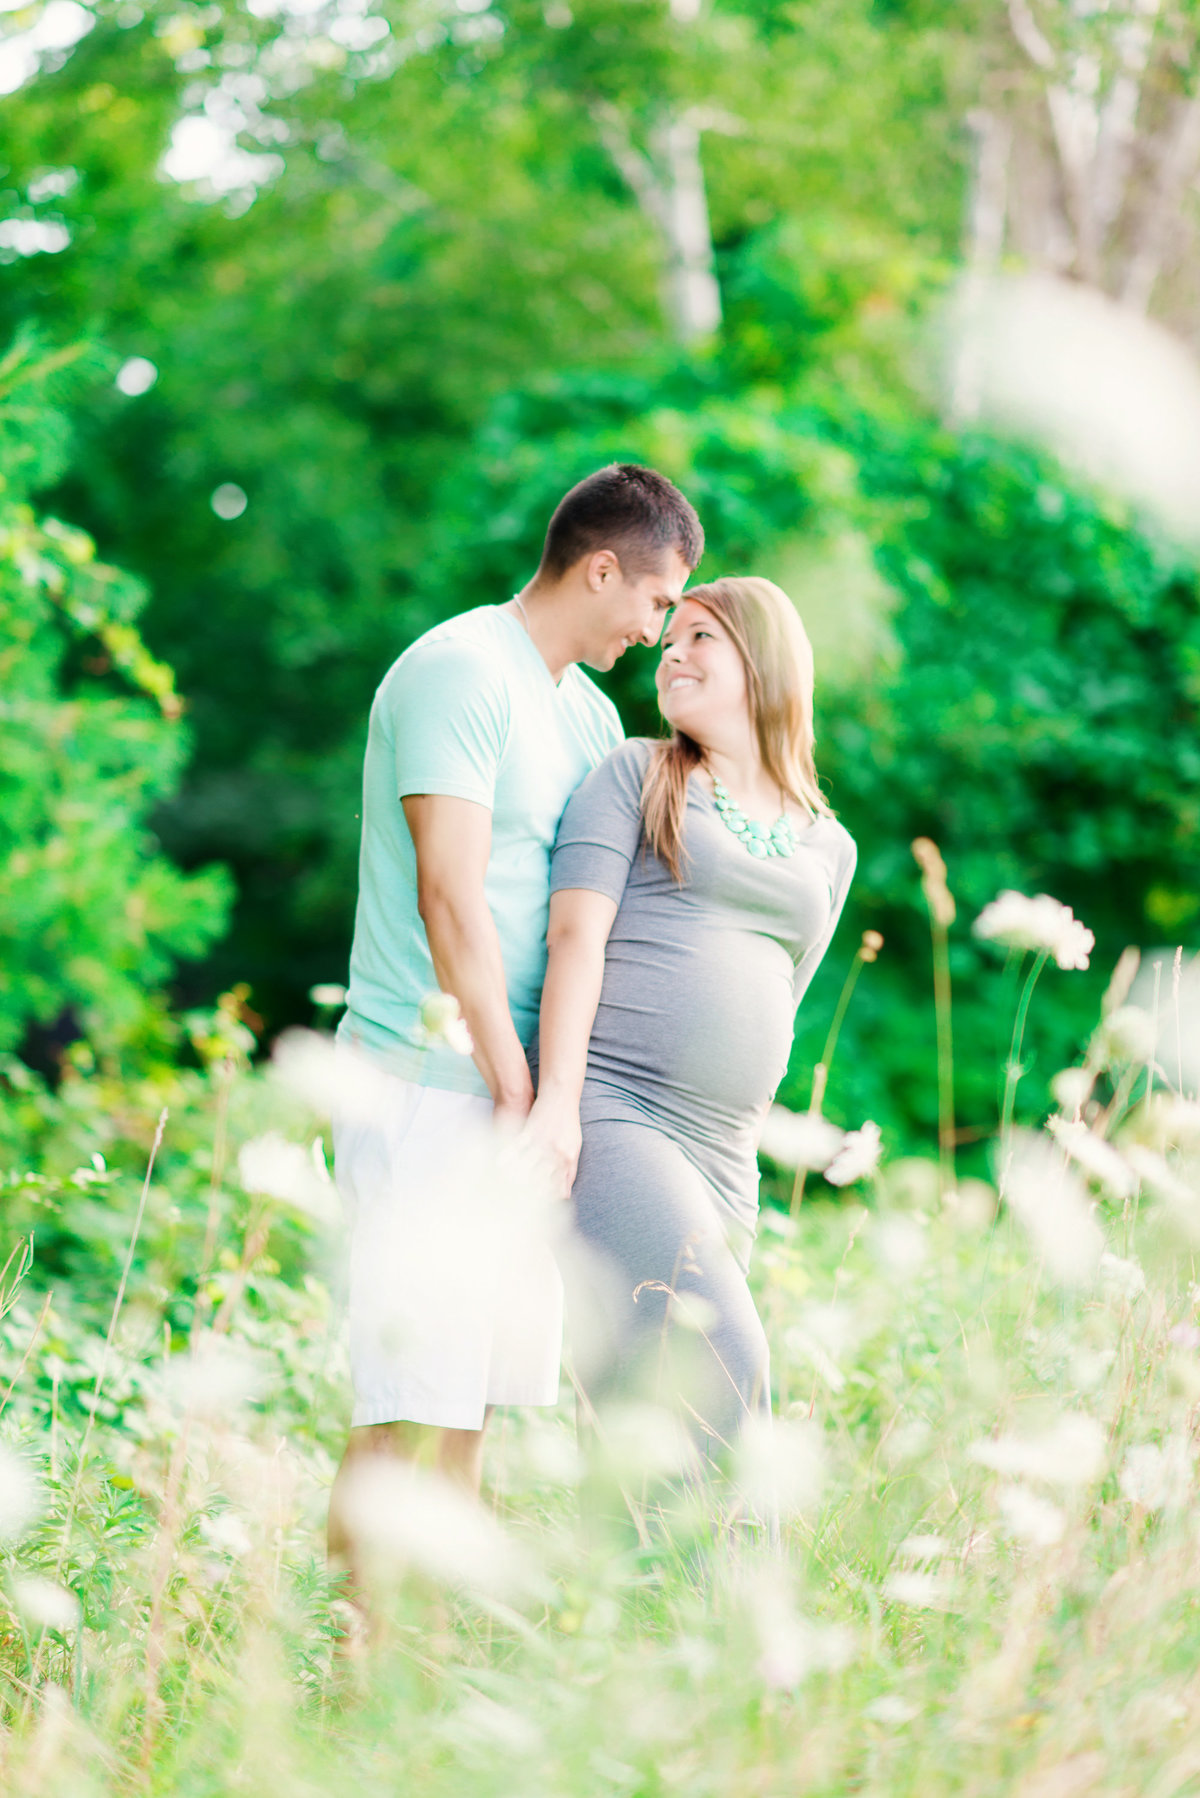 glen arbor michigan maternity portrait photographers